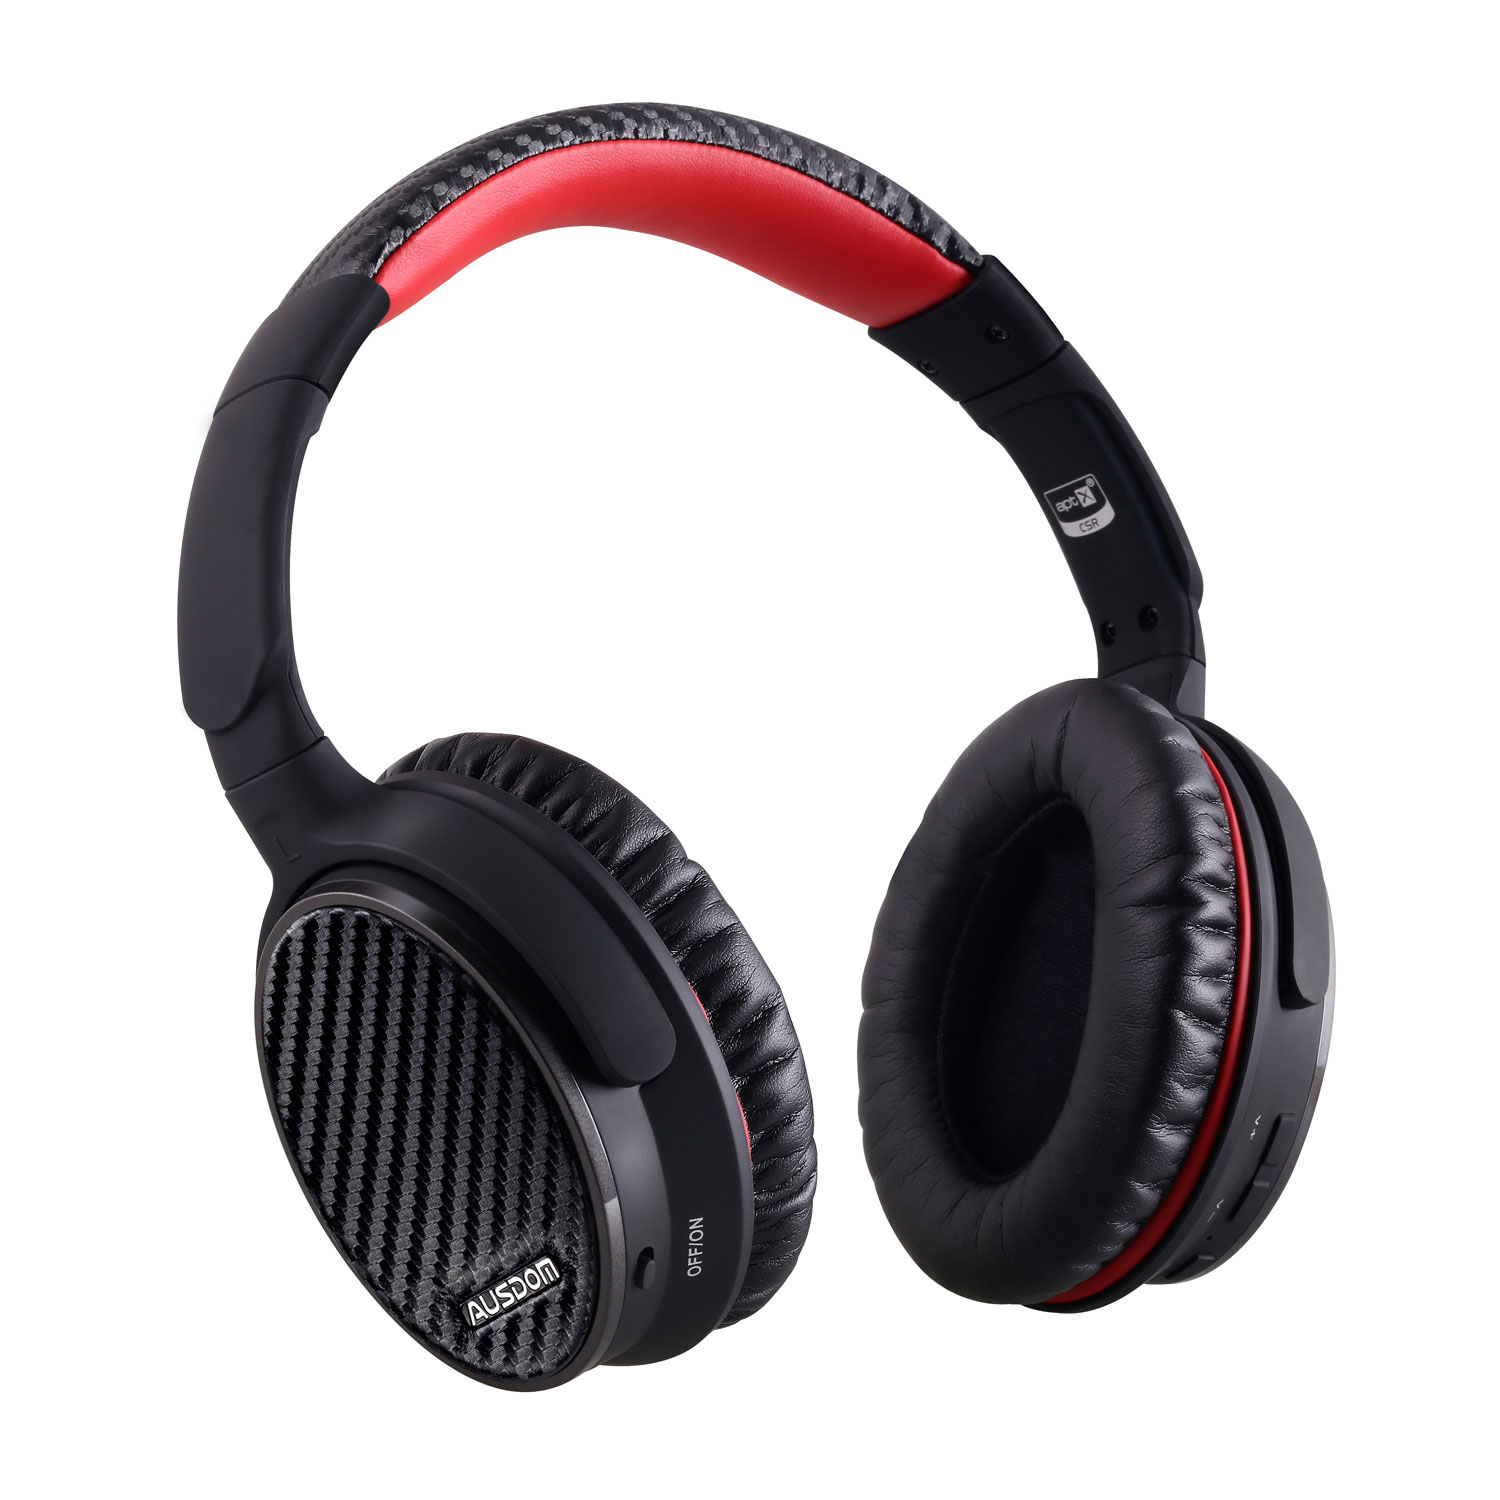 ausdom anc7 active noise cancelling wireless bluetooth headphone reviews head. Black Bedroom Furniture Sets. Home Design Ideas